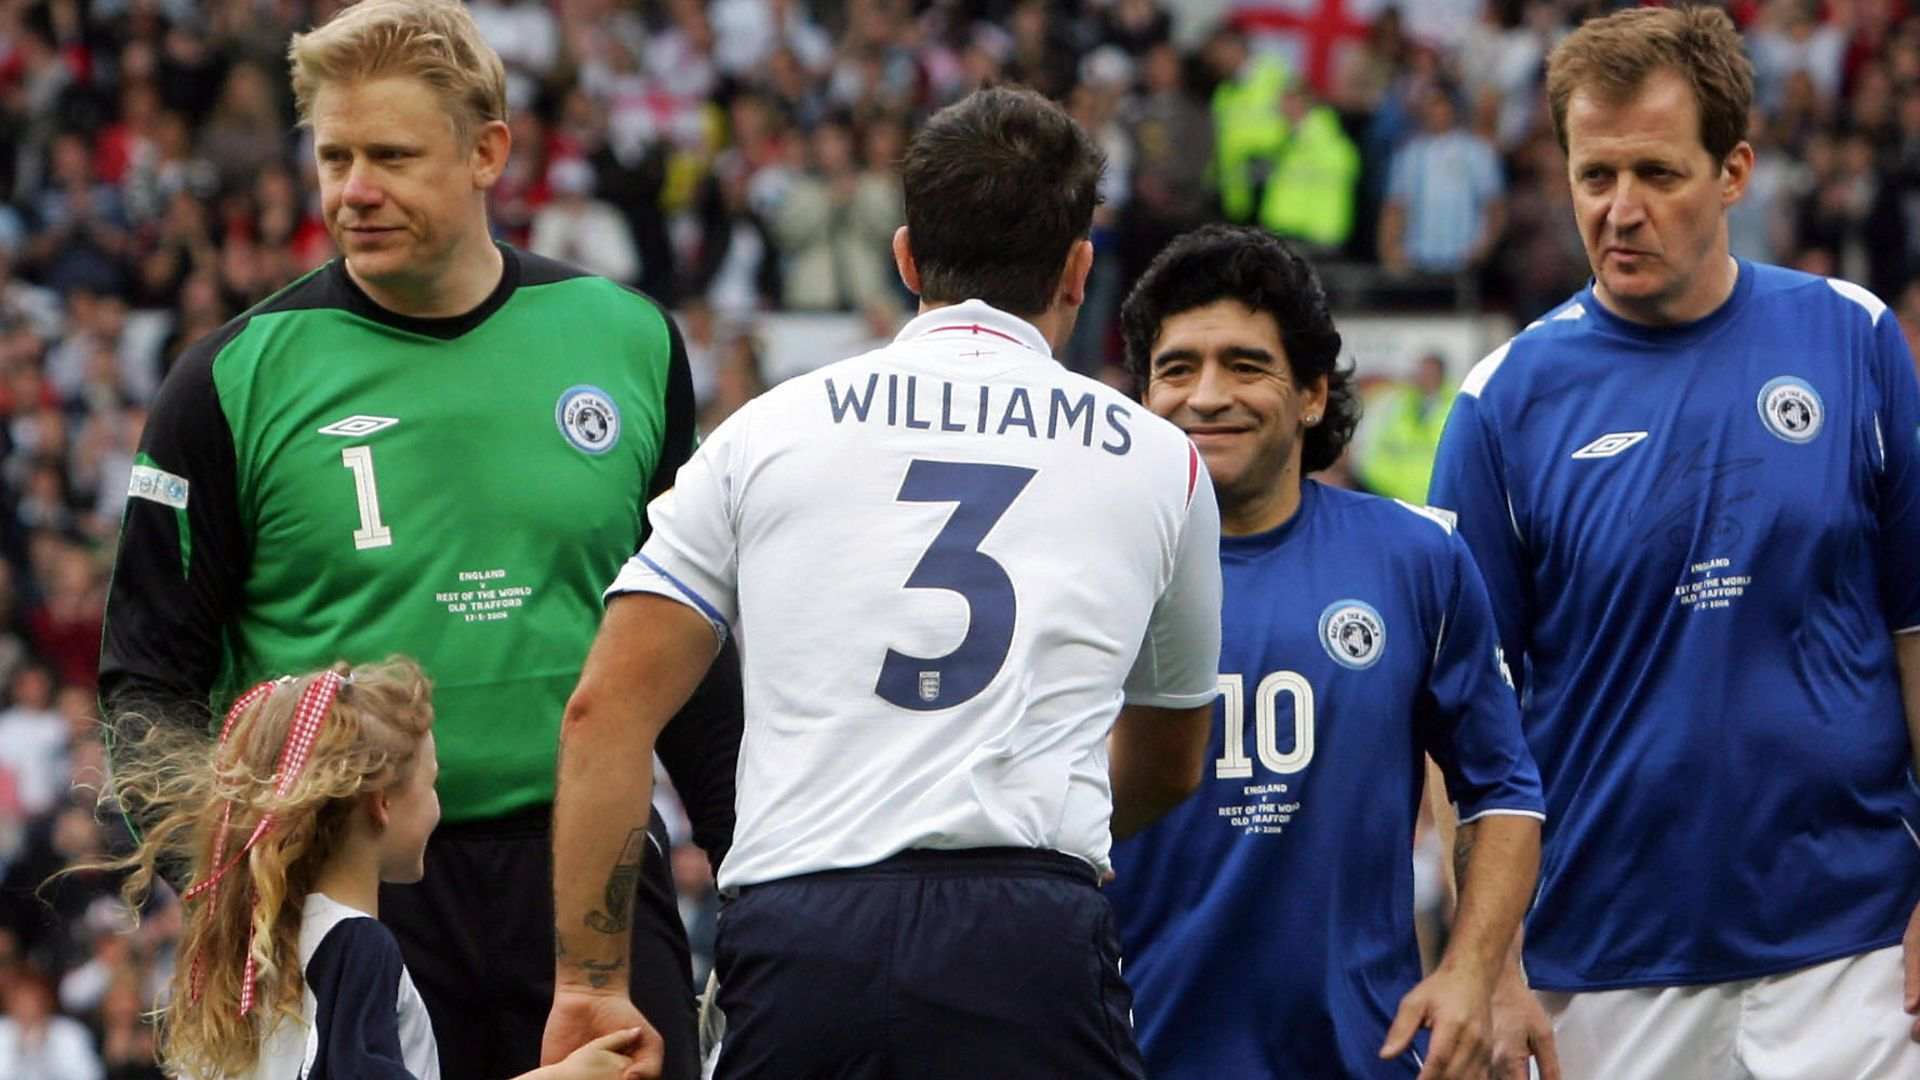 Diego Maradona, lining up alongside Alastair Campbell (r) and  Peter Schmeichel (l), greets Robbie Williams at the start of the Soccer Aid charity match at Old Trafford, in 2006 - Credit: AFP via Getty Images